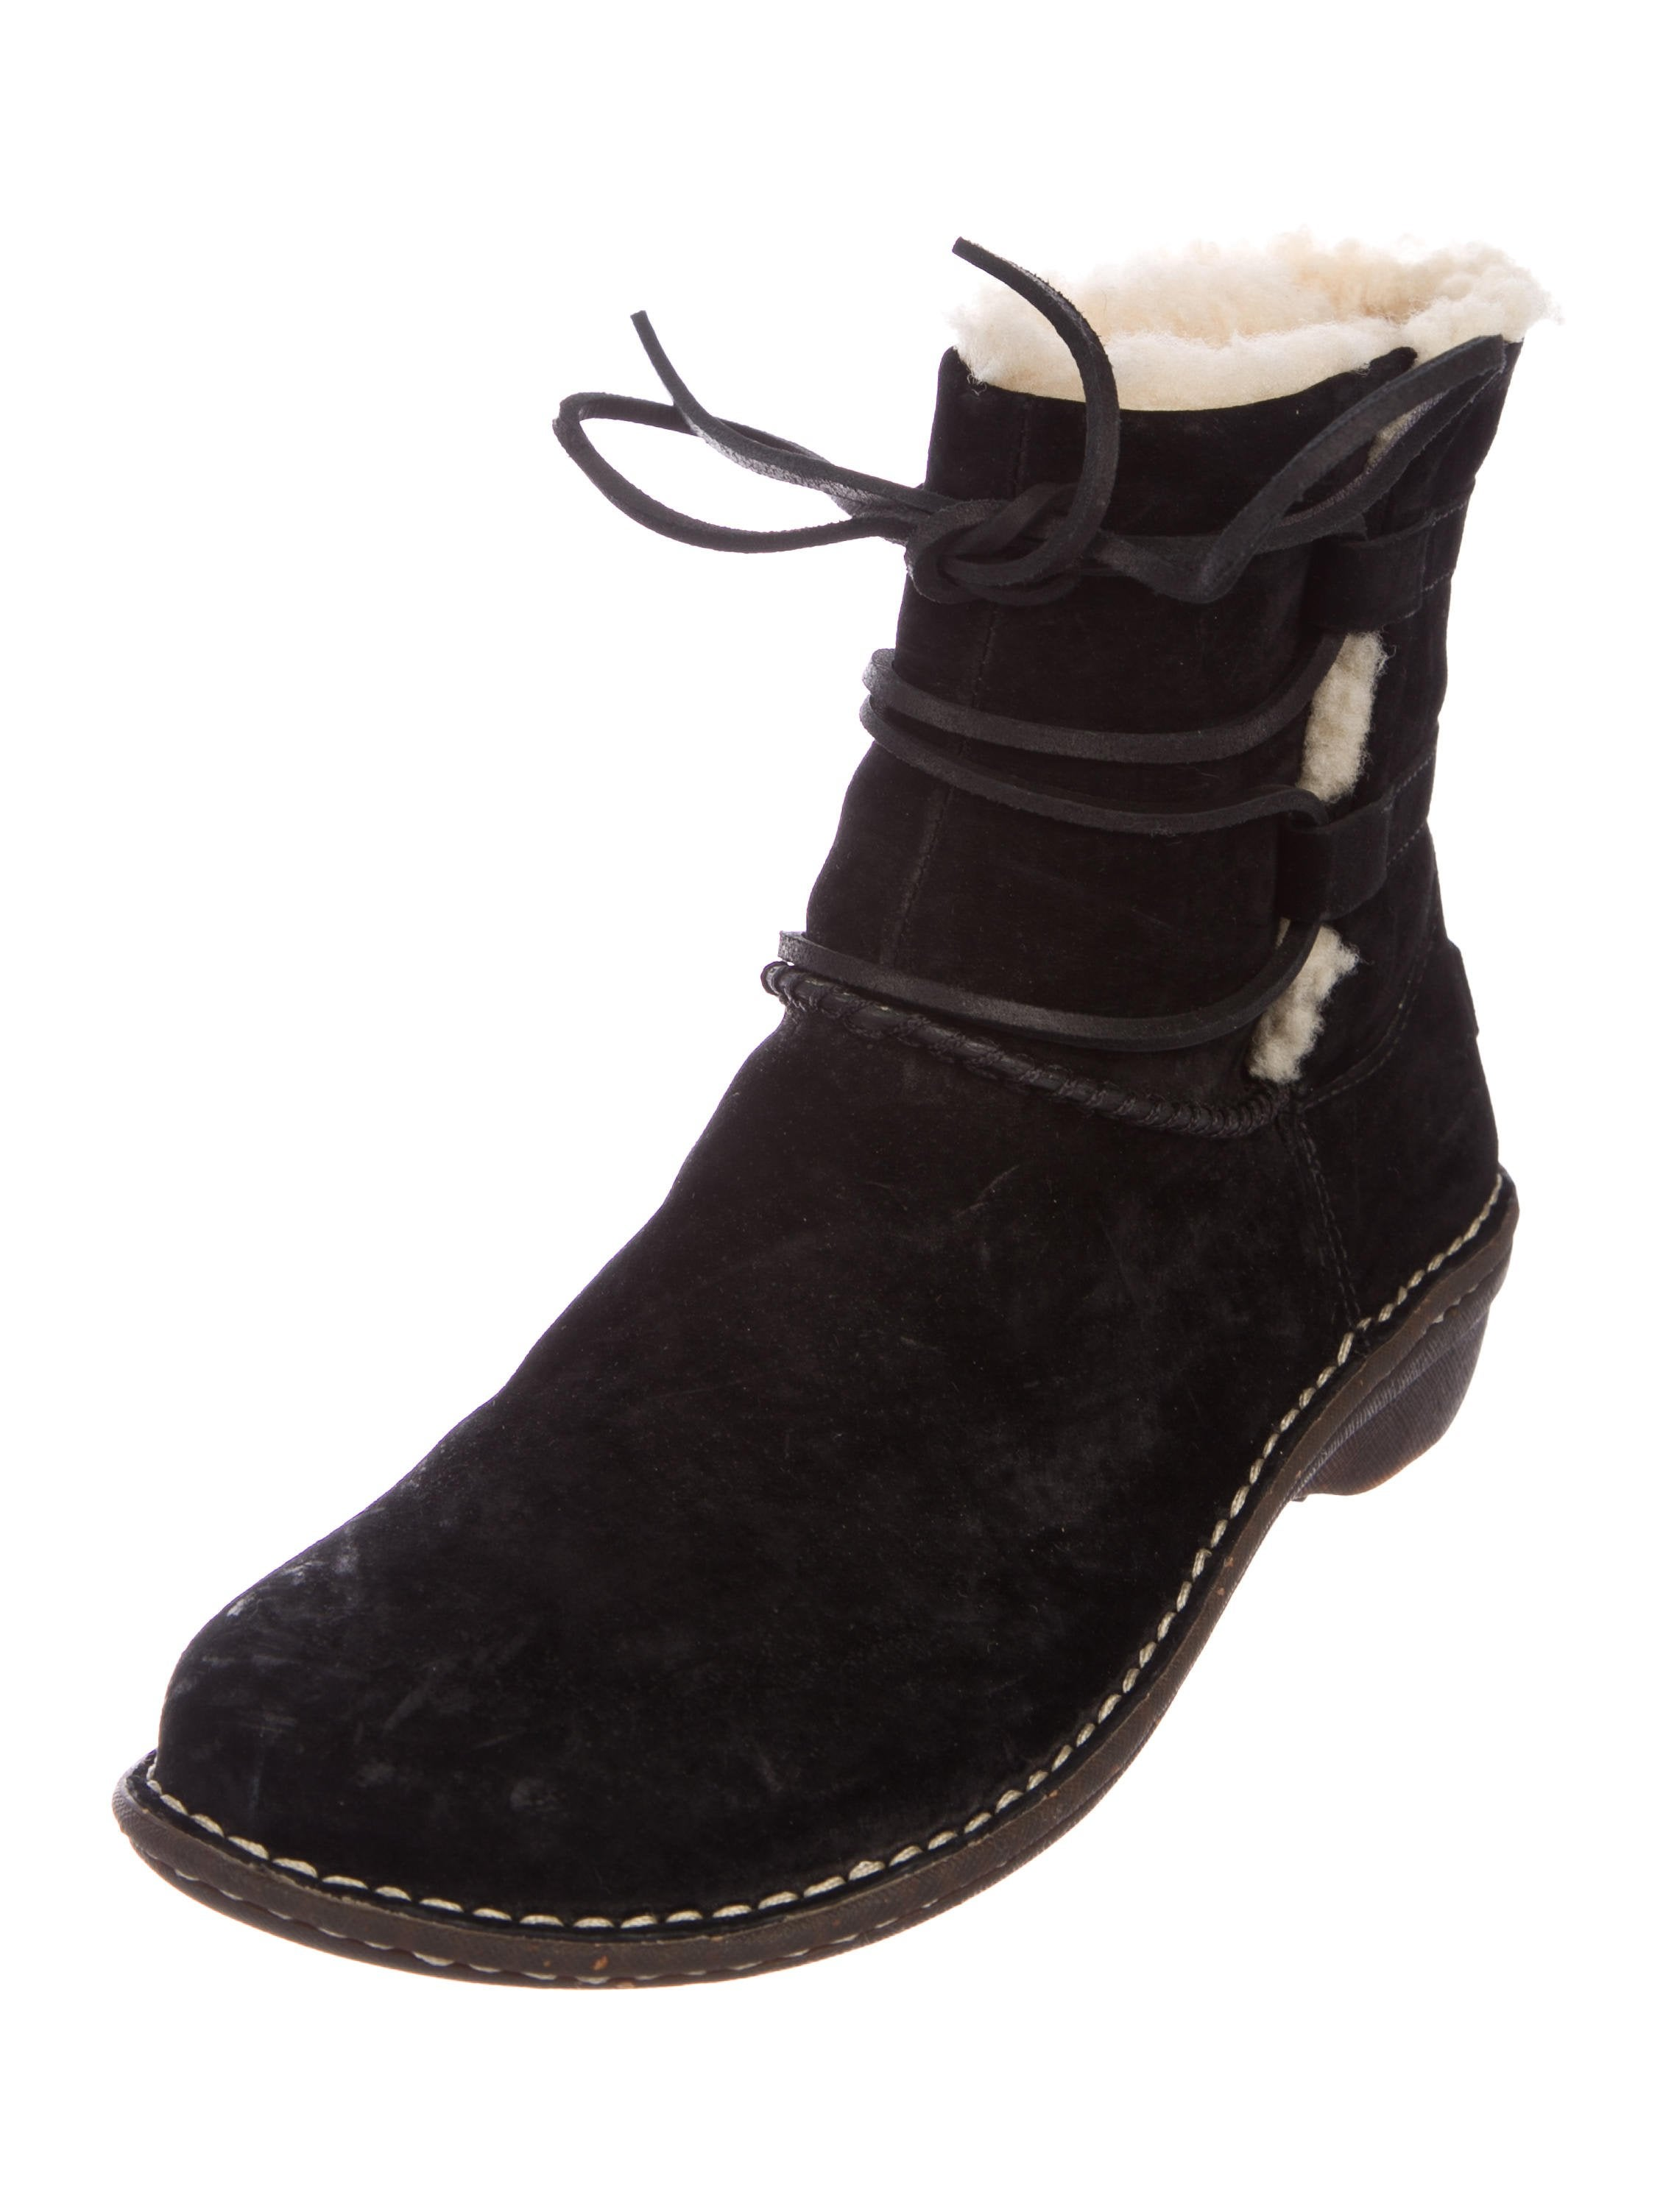 UGG Australia Caspian Round-Toe Ankle Boots cheapest price online outlet from china VUyRUlYy